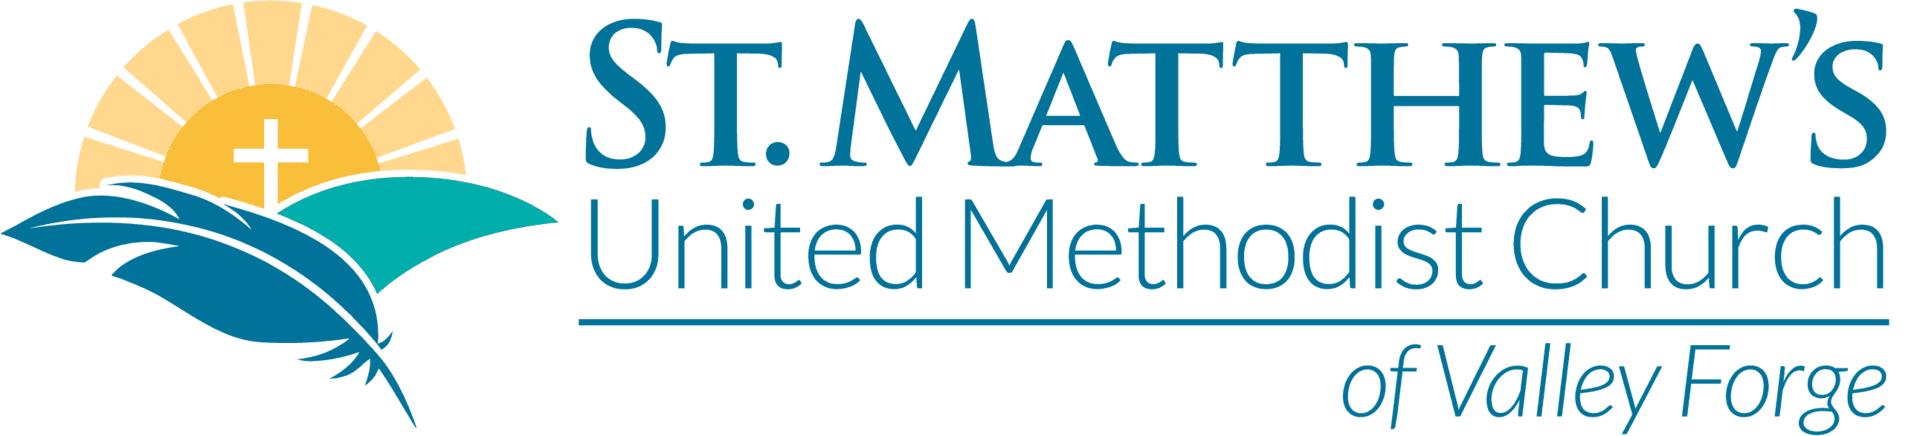 St. Matthew's United Methodist Church of Valley Forge - Logo